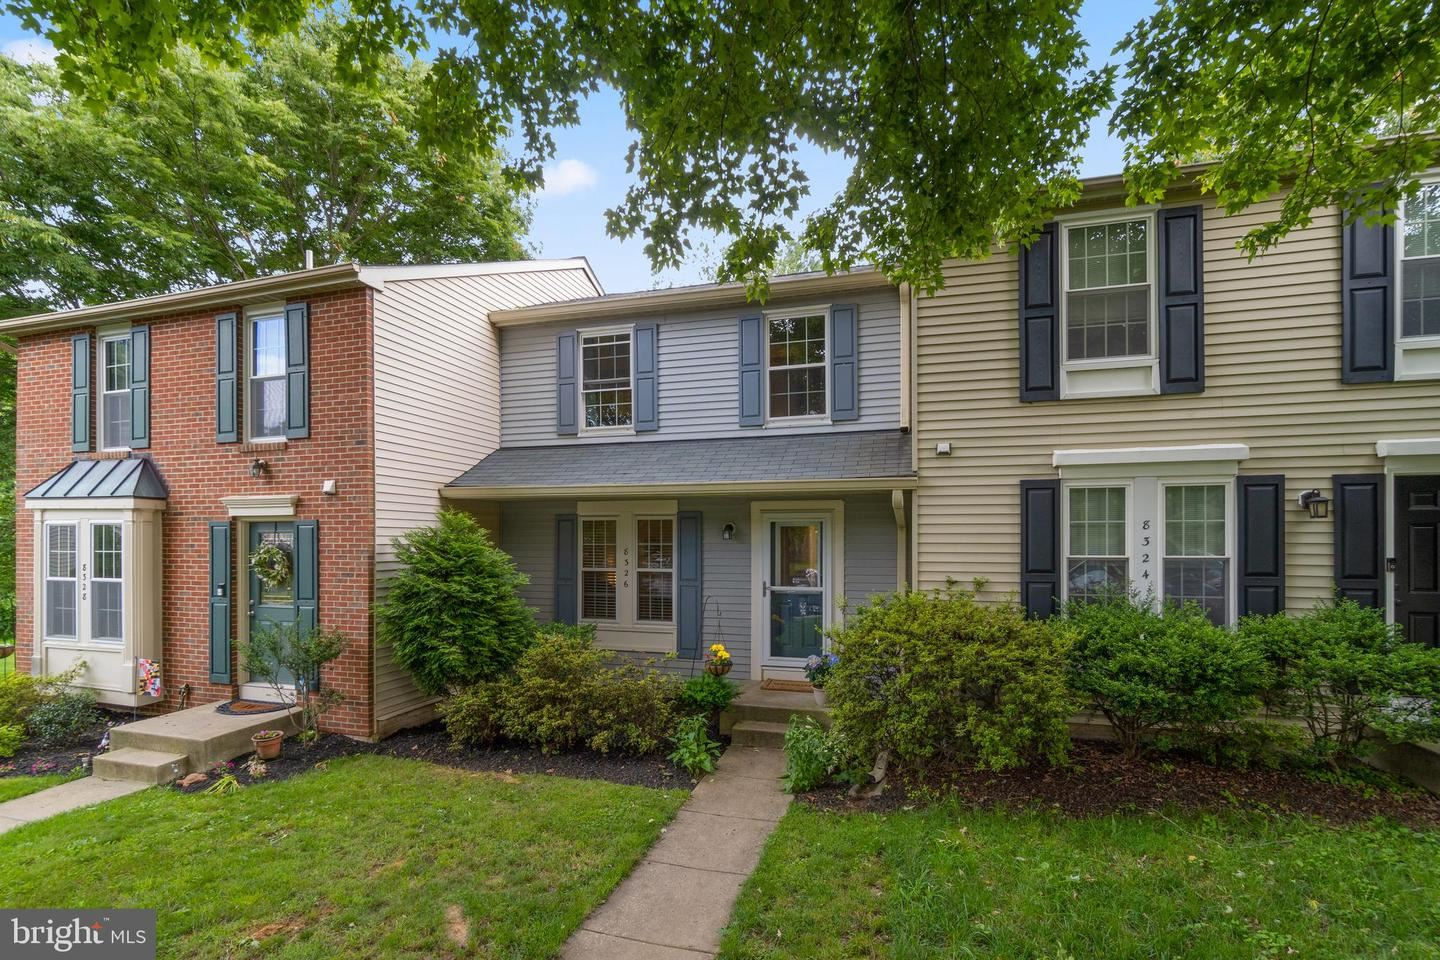 8326 SILVER TRUMPET DR, Columbia, MD 21045 - MLS#: MDHW2000198